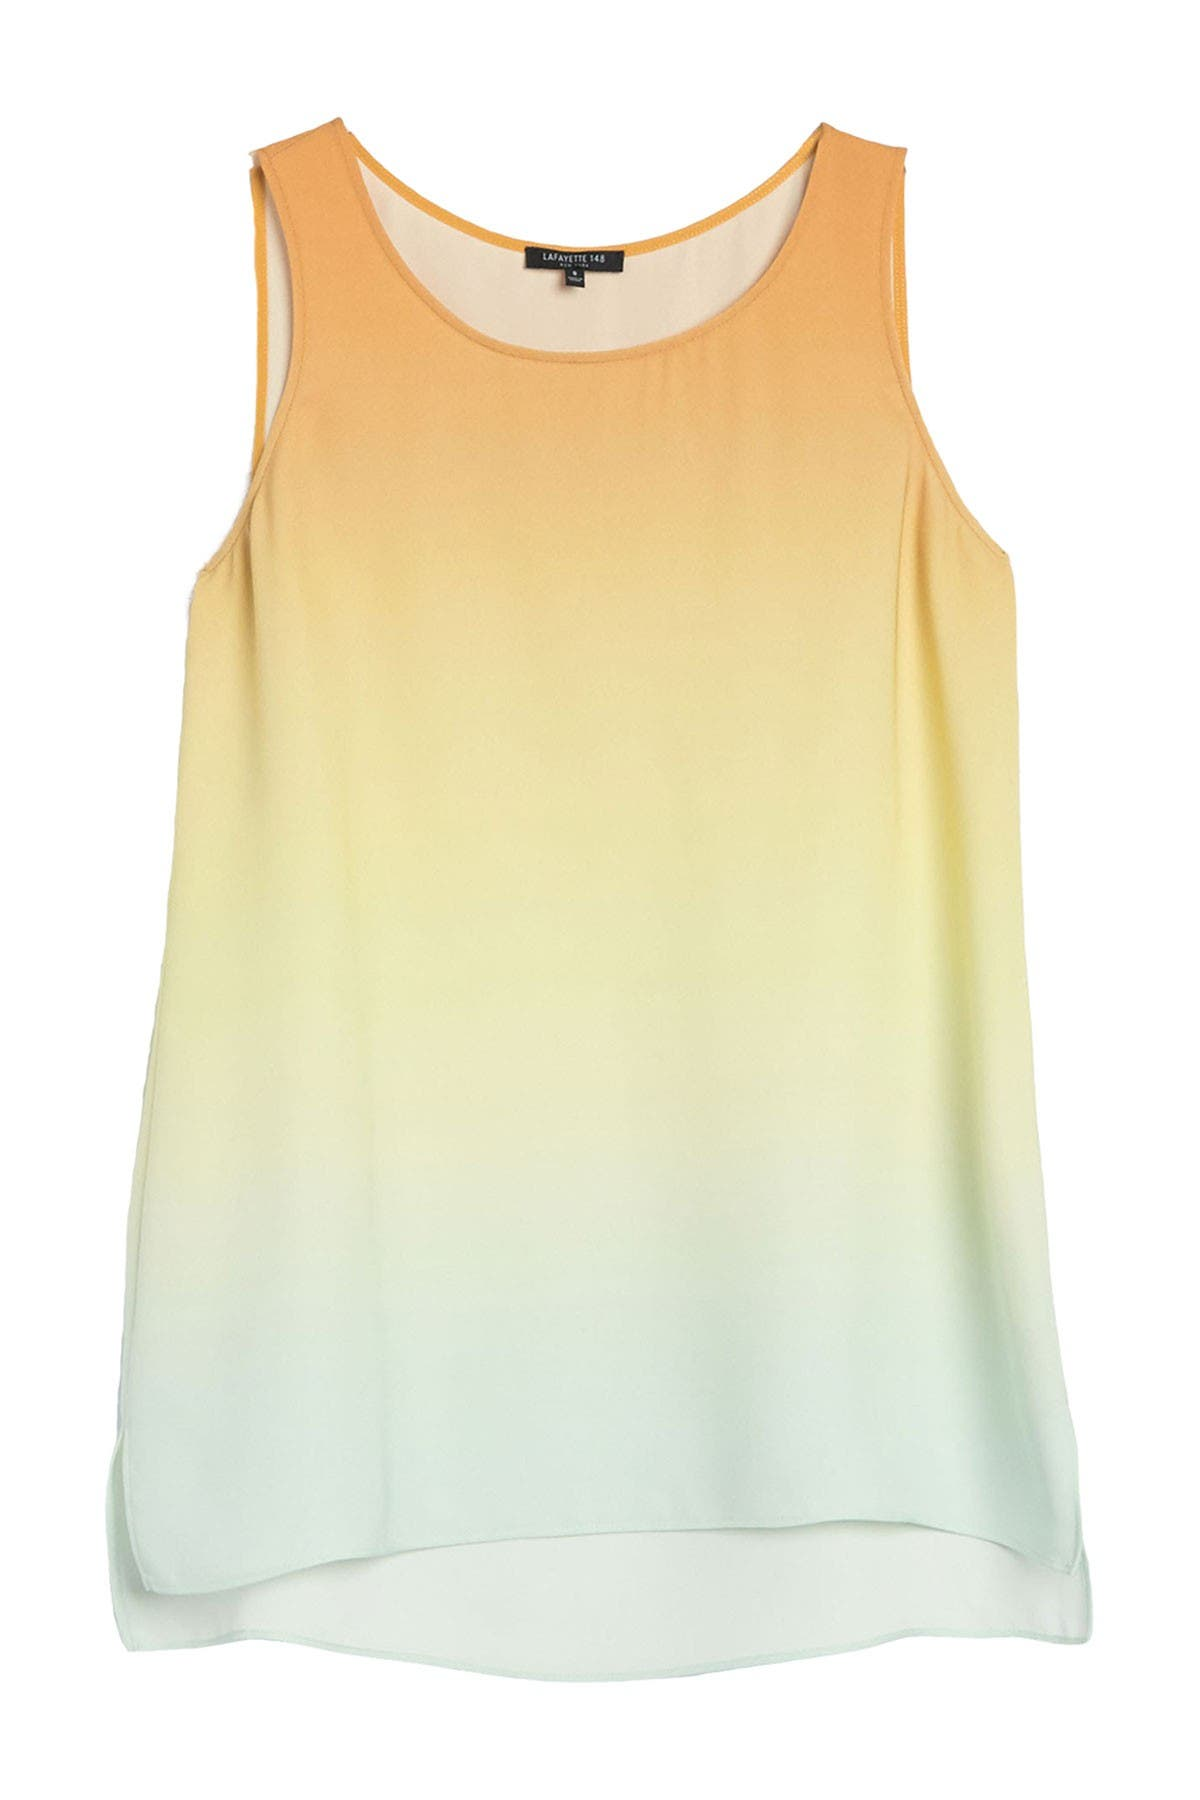 Image of Lafayette 148 New York Ruthie Dip Dyed Sleeveless Top